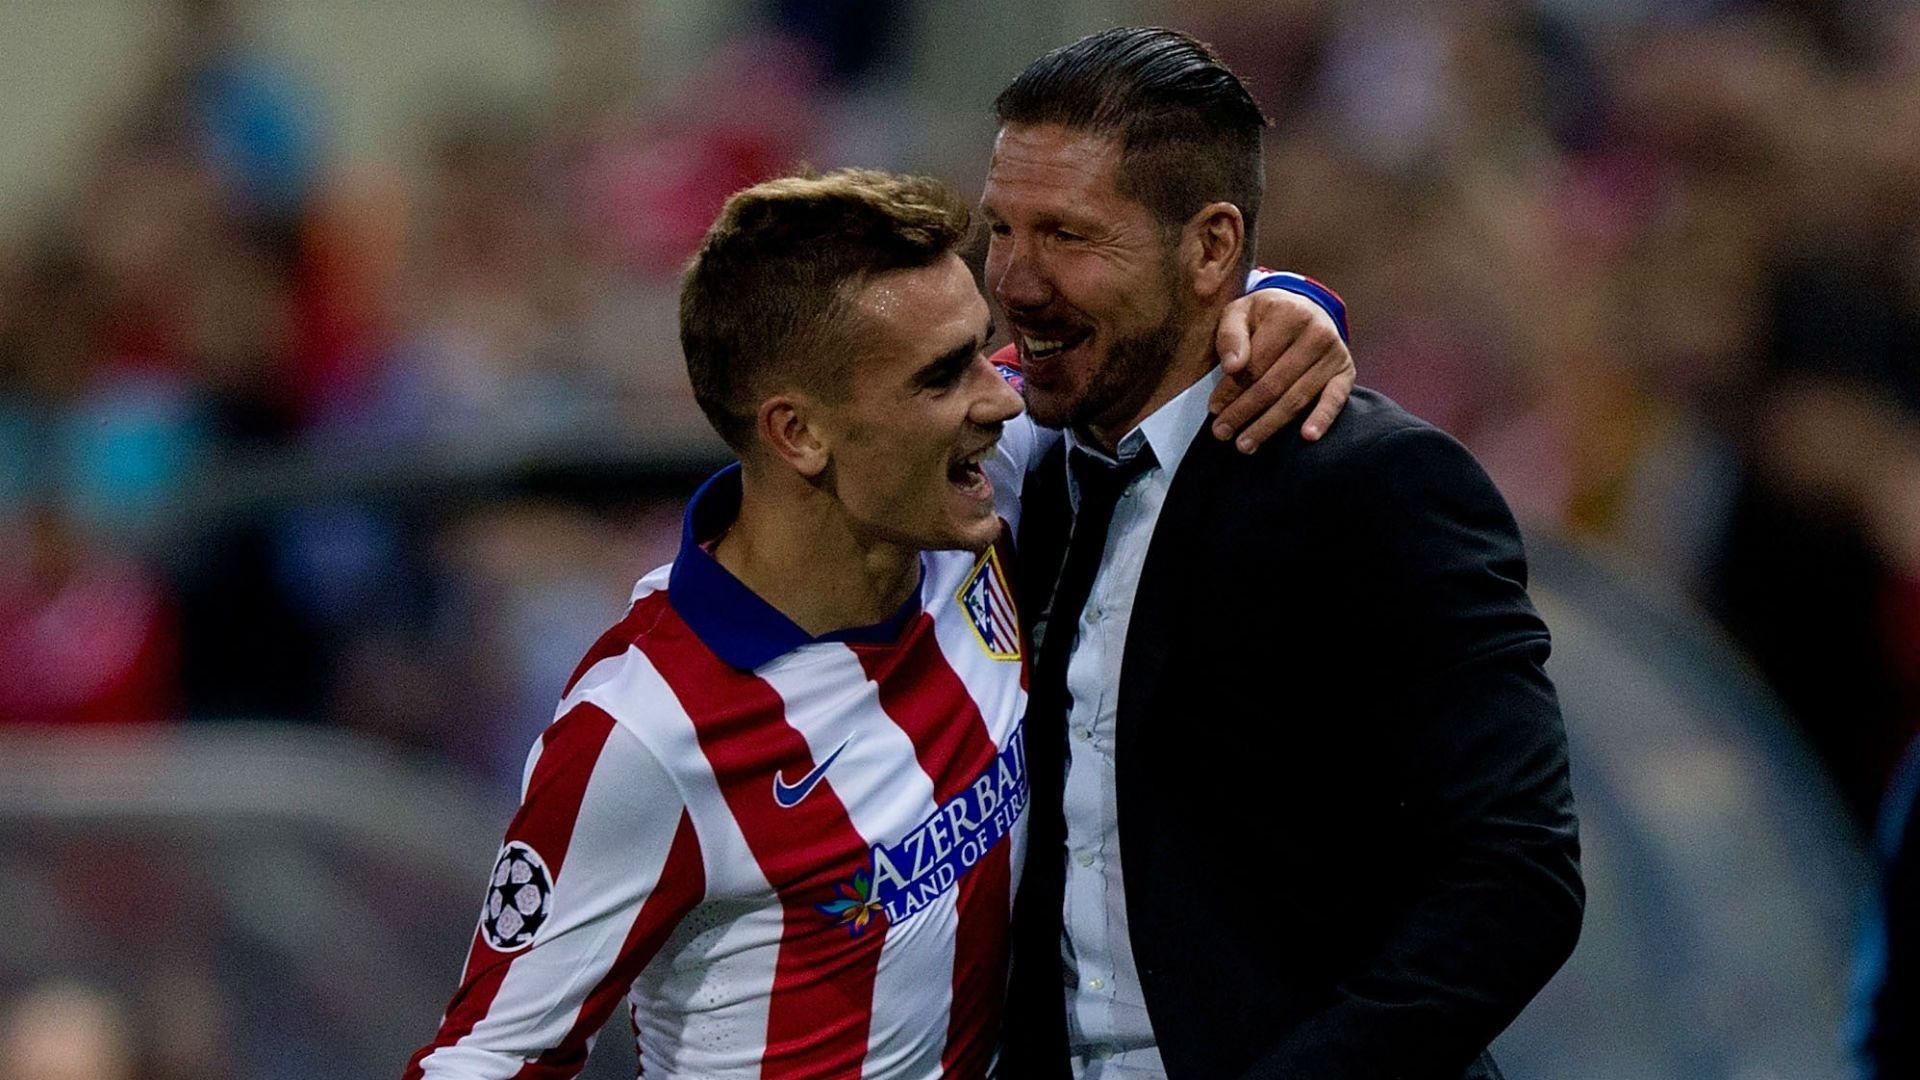 Antoine Griezmann With Diego Simeone Wallpaper #4737 Wallpaper ...